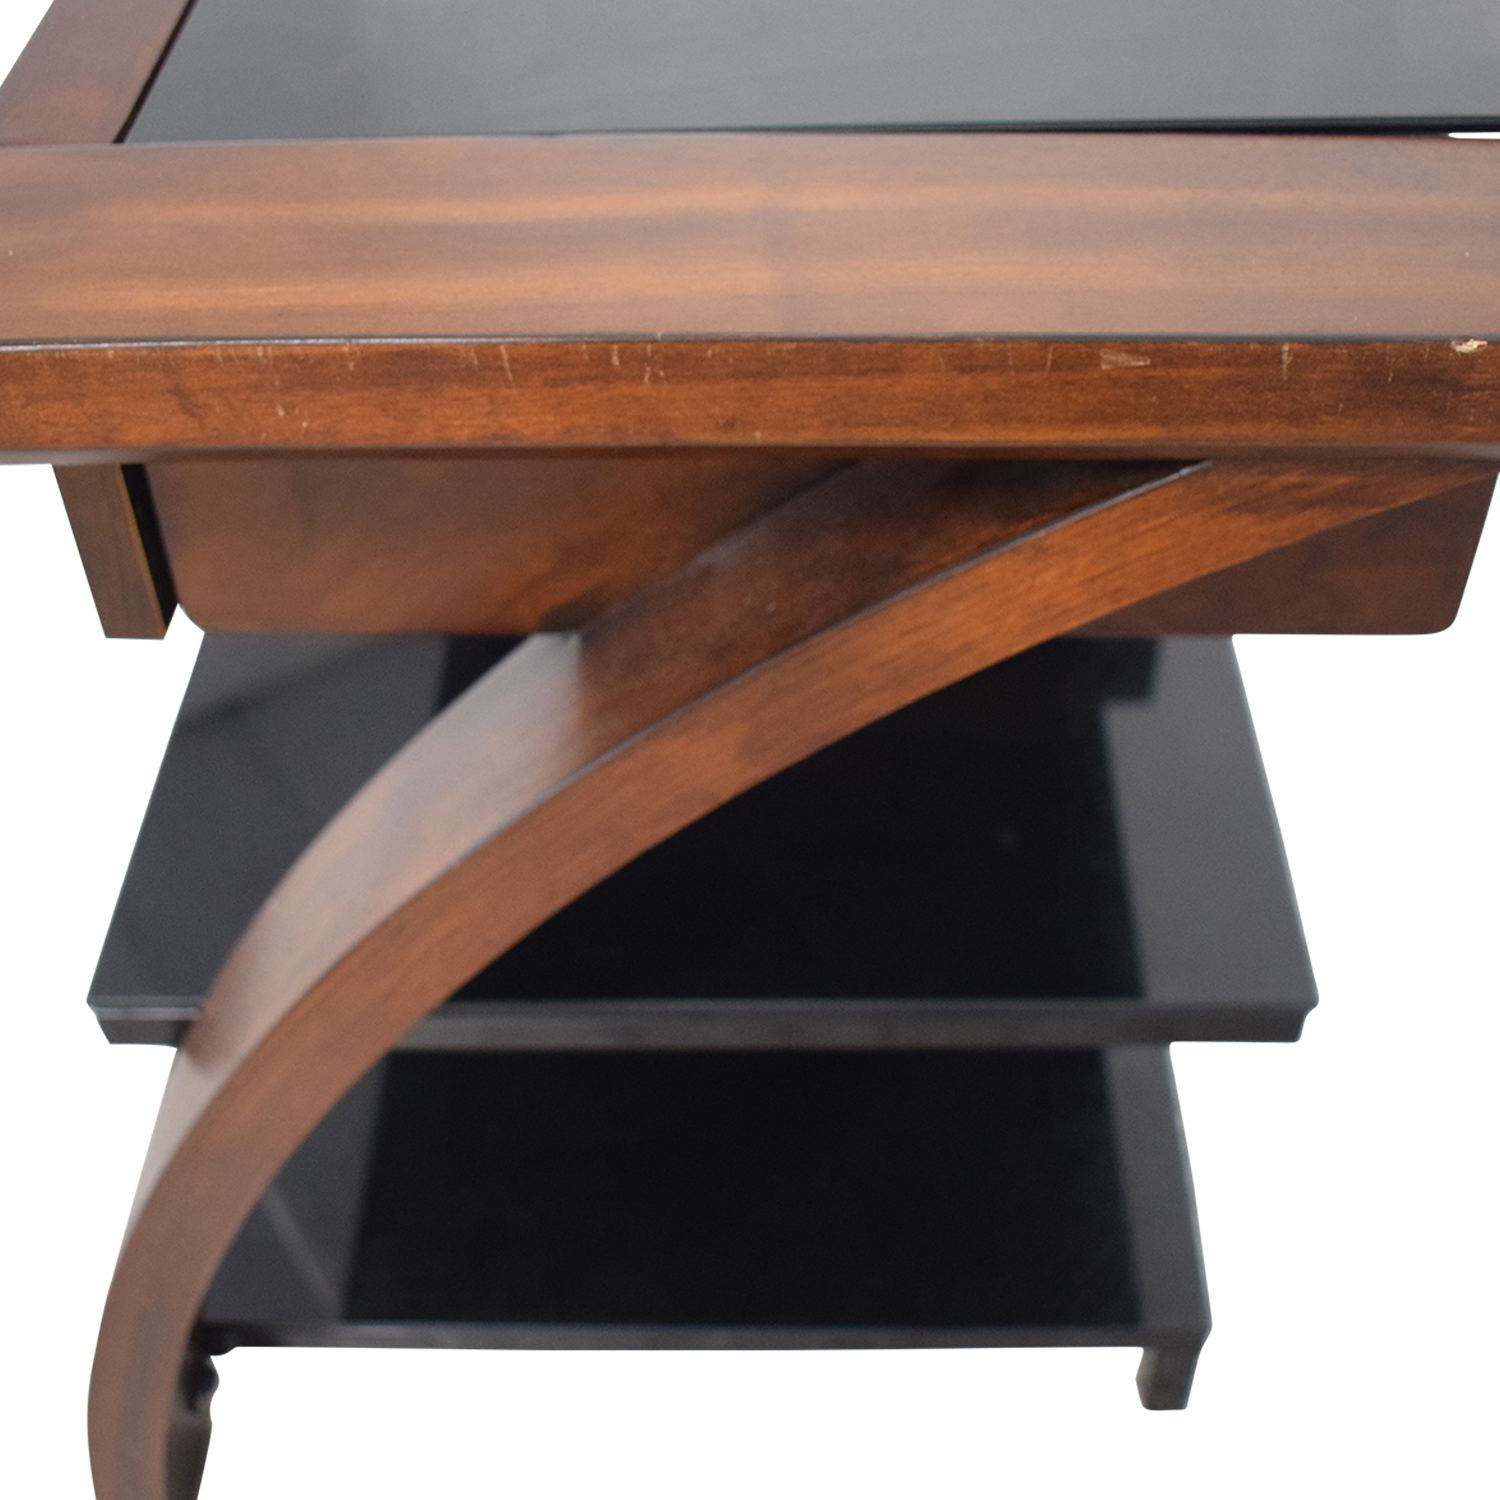 Whalen Furniture Whalen Furniture Black Glass and Wood Entertainment Center nyc